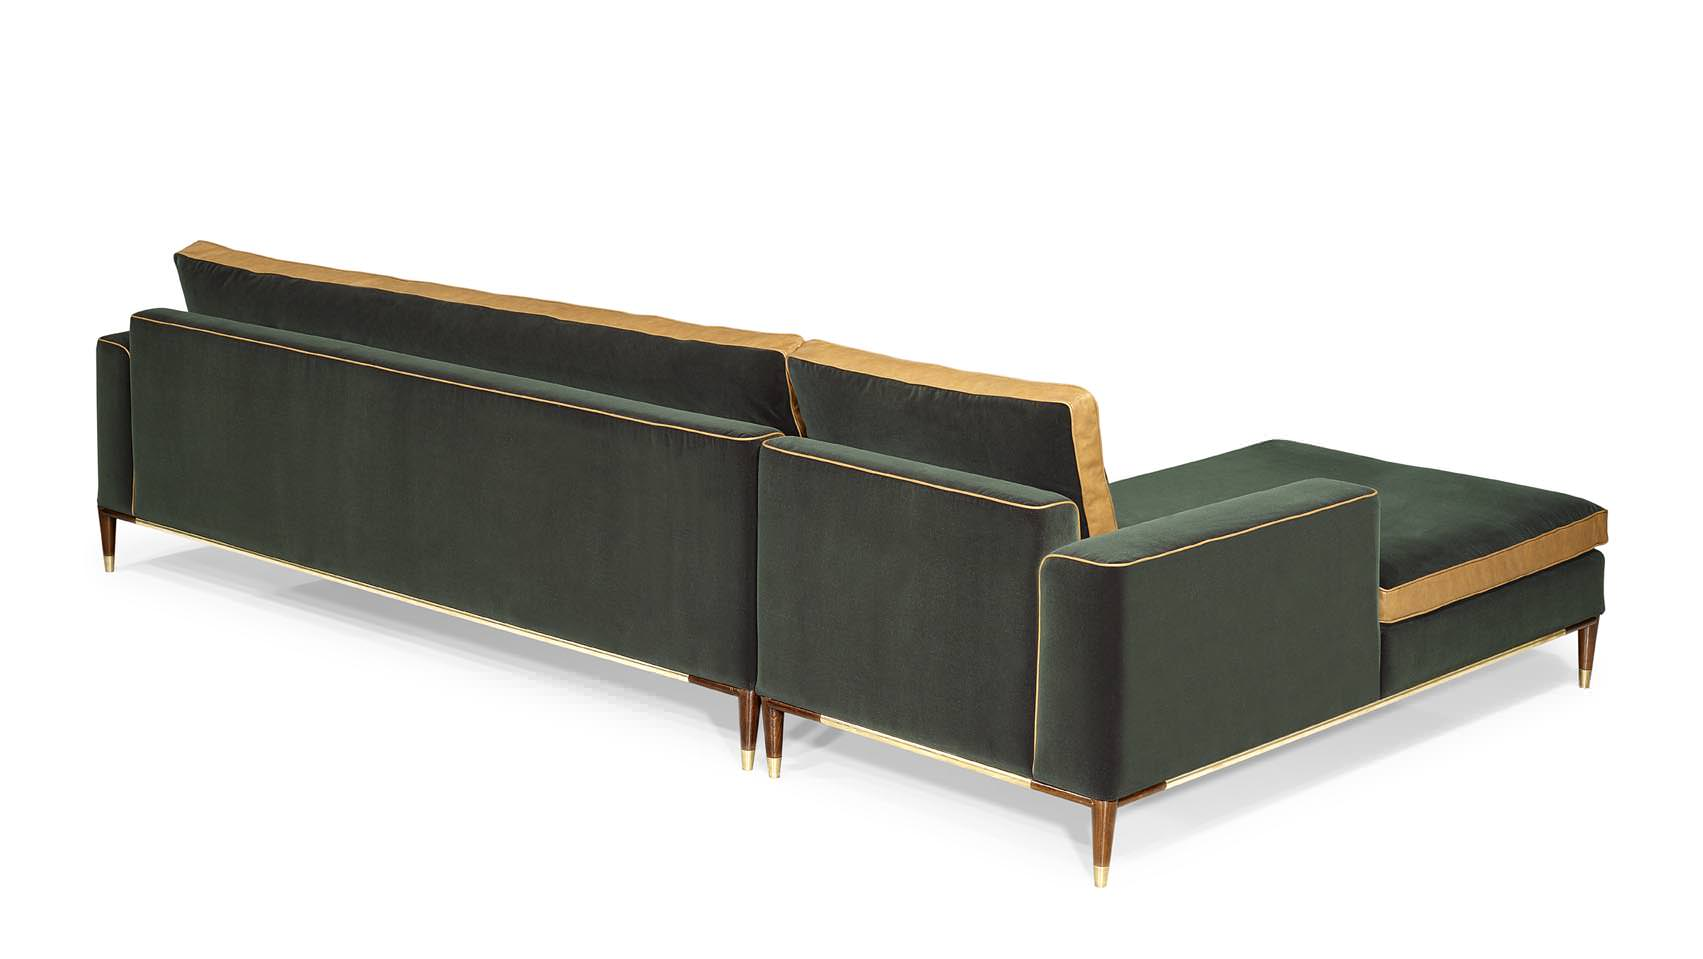 Elegance Sofa - Furniture